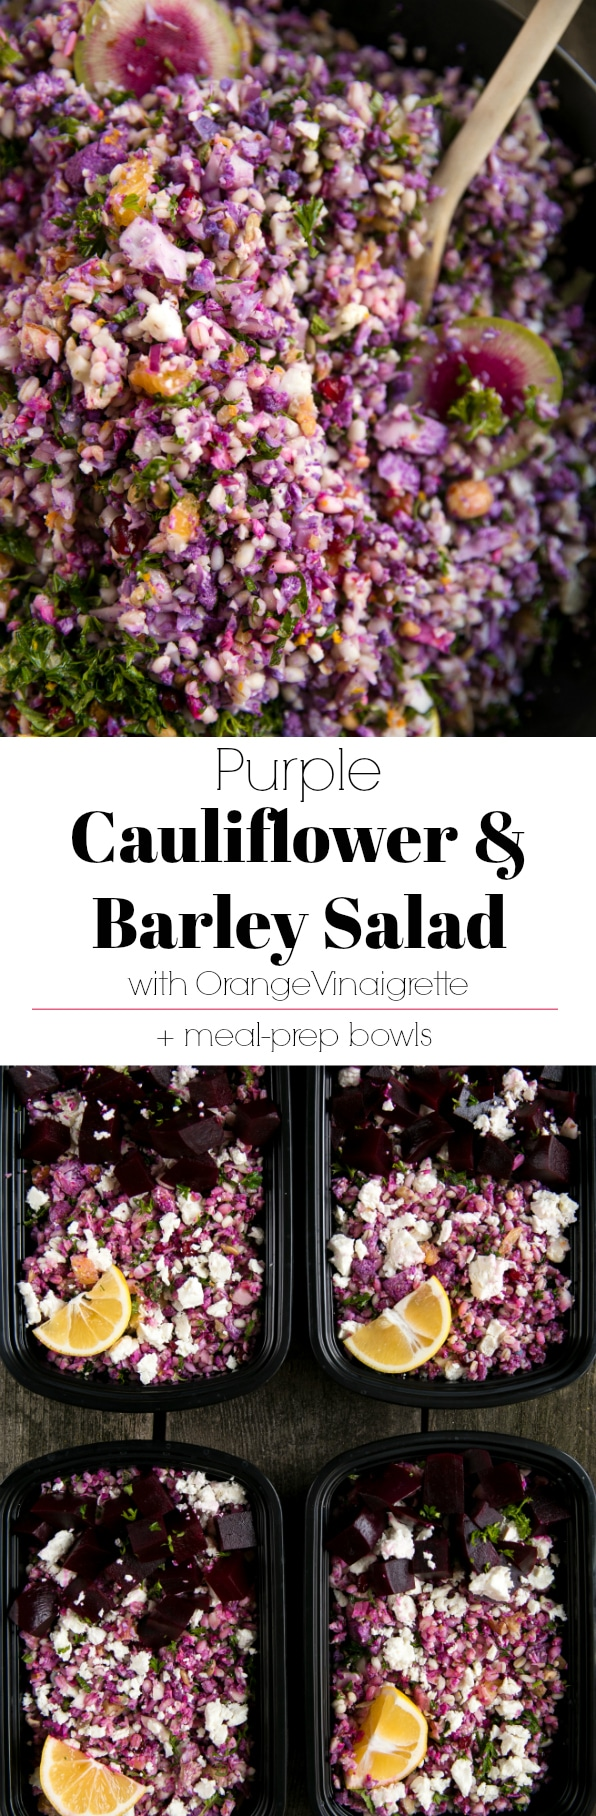 Purple Cauliflower and Barley Salad with Orange Vinaigrette - via @theforkedspoon